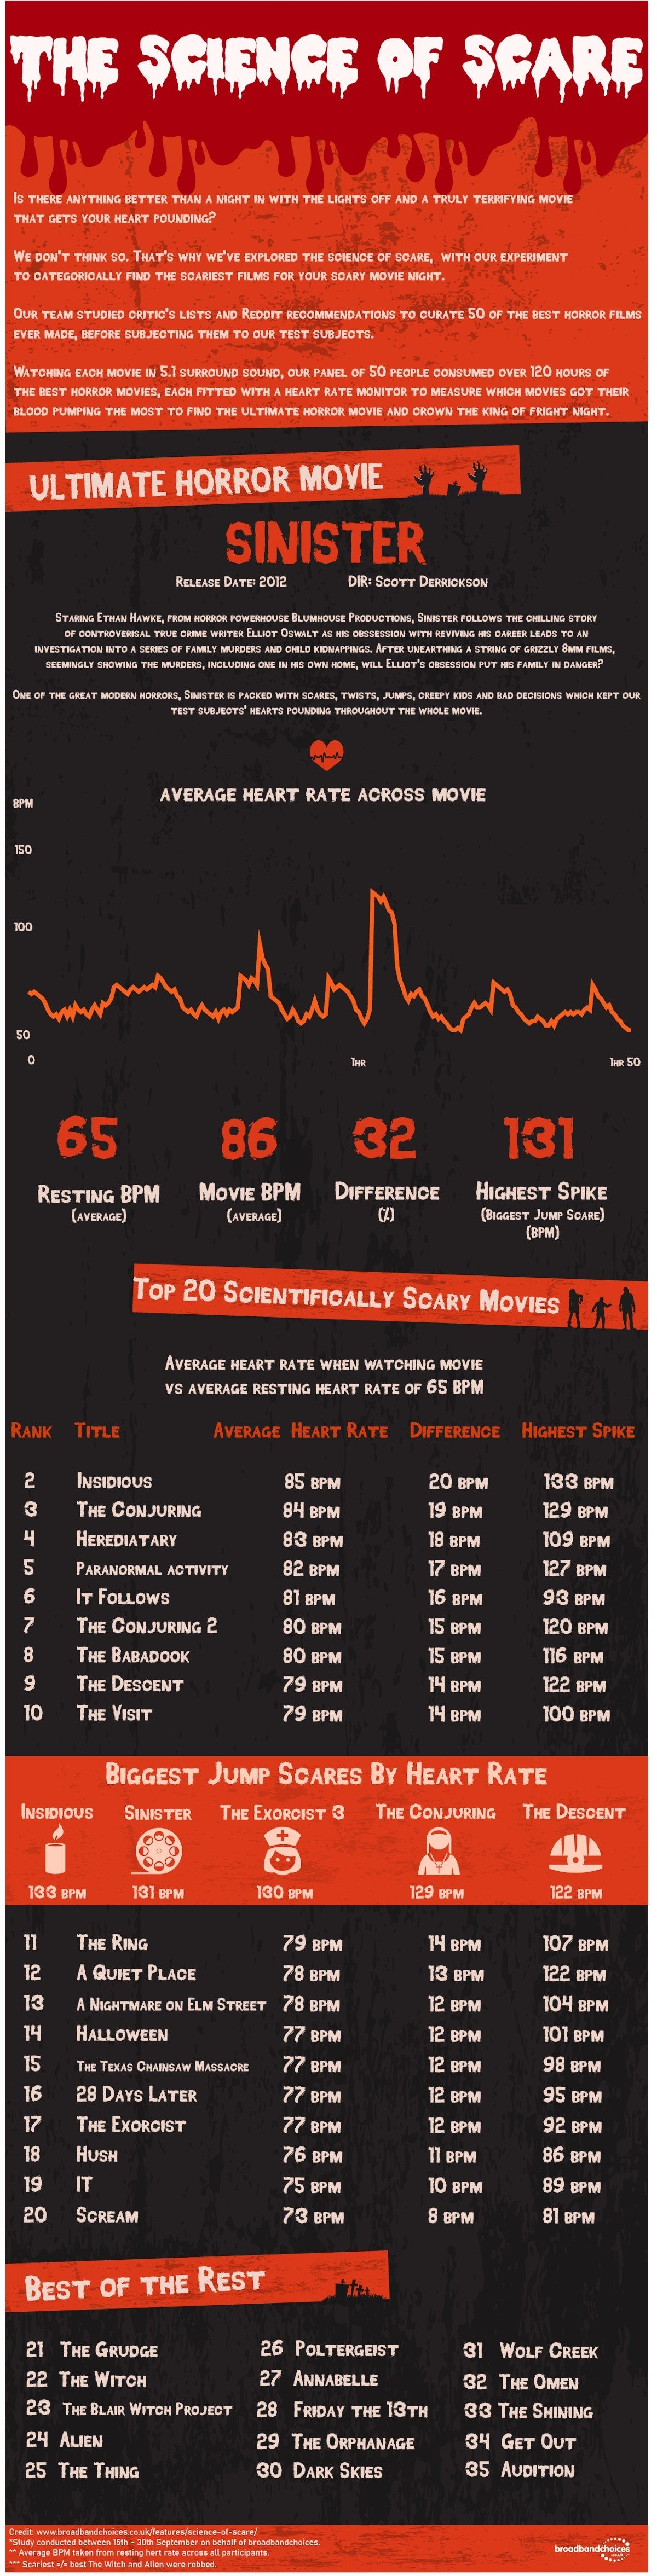 Science of Scare Final Results Sinister Scaries Movie Ever